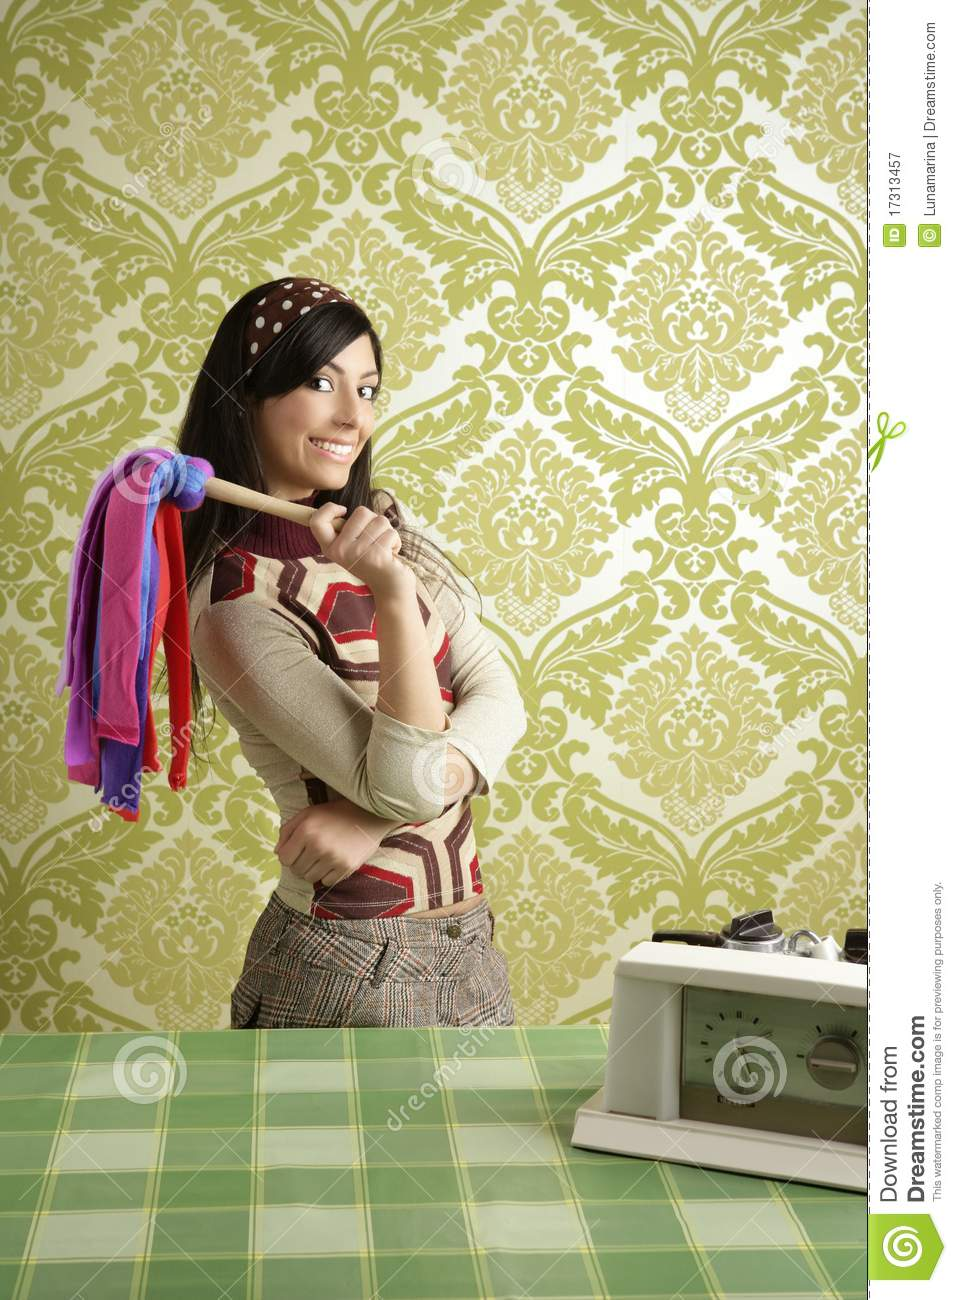 Retro housewife cleaning duster woman sixties stock image for Classic housewife